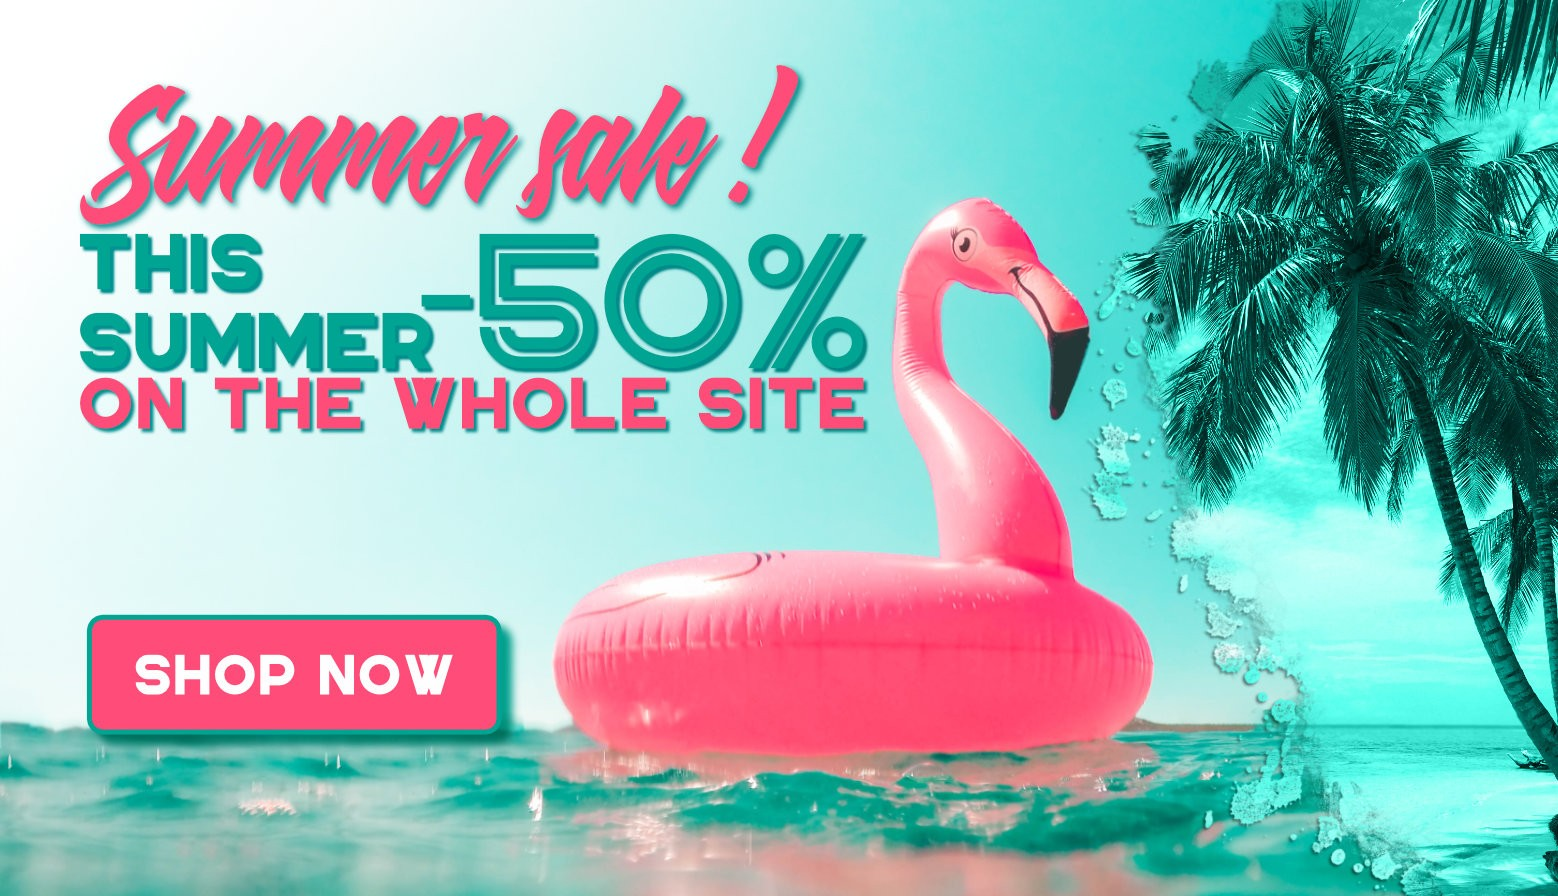 This summer -50% on the whole site